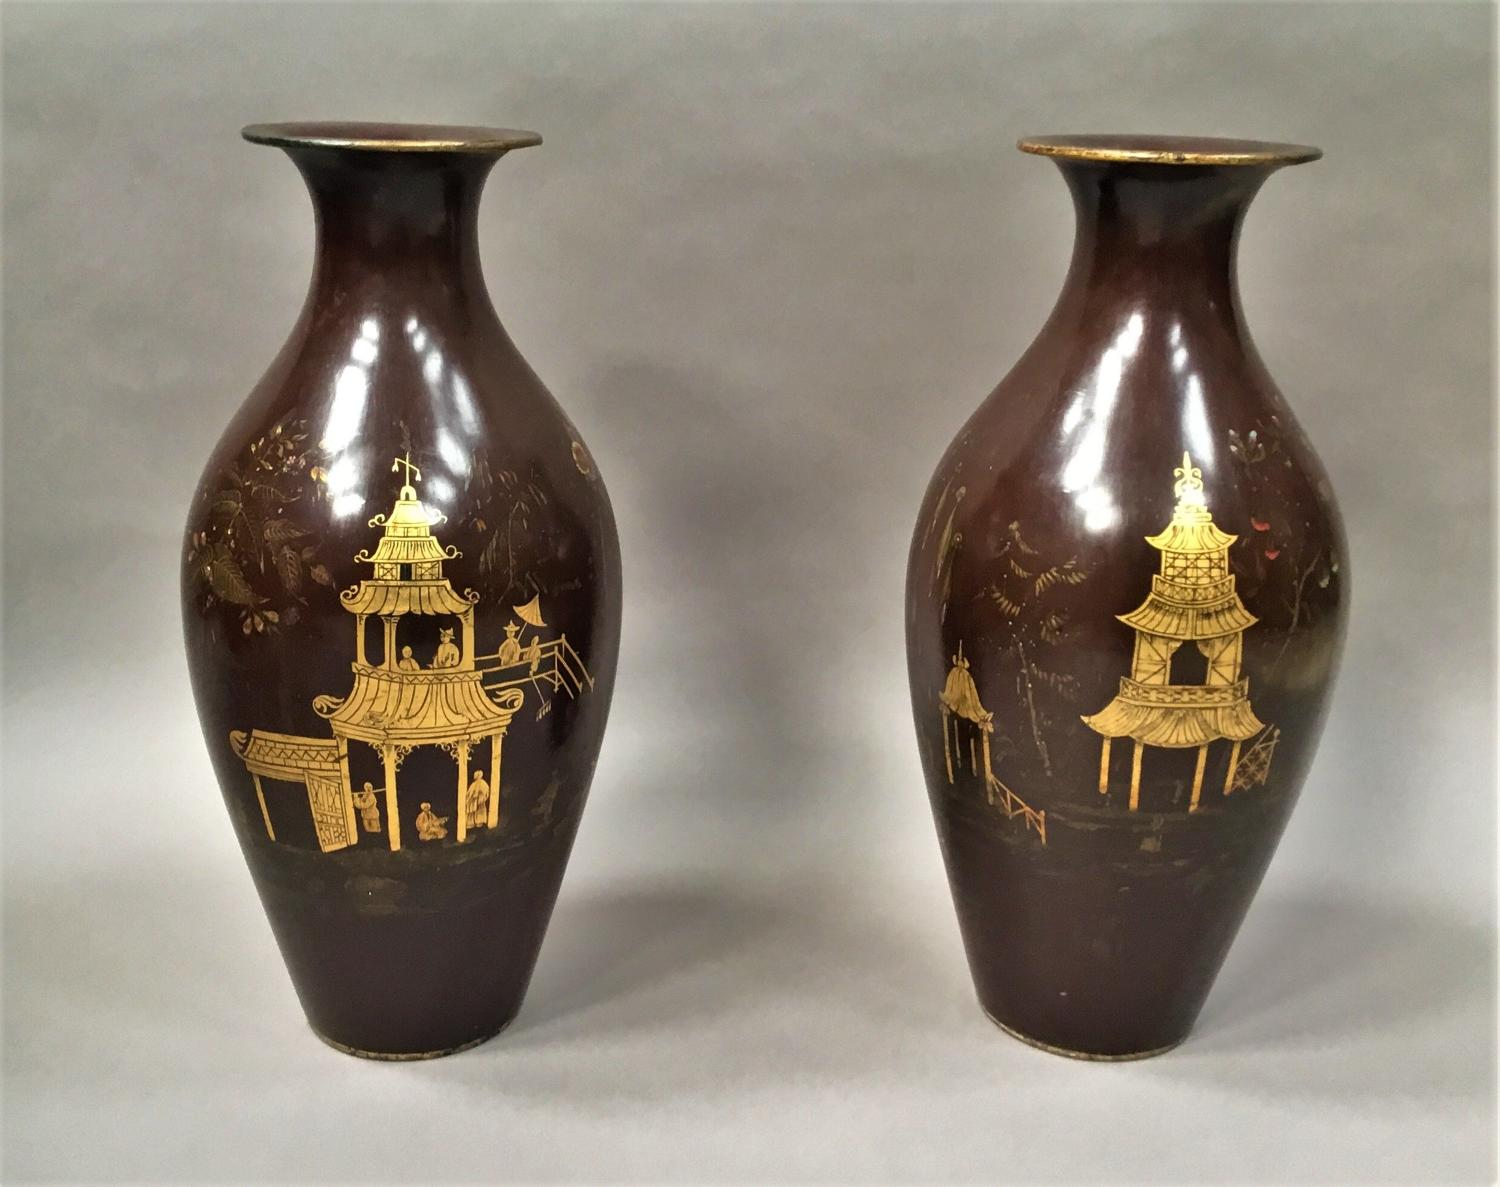 C19th pair of lacquered papier mache vases by Jennens & Bettridge